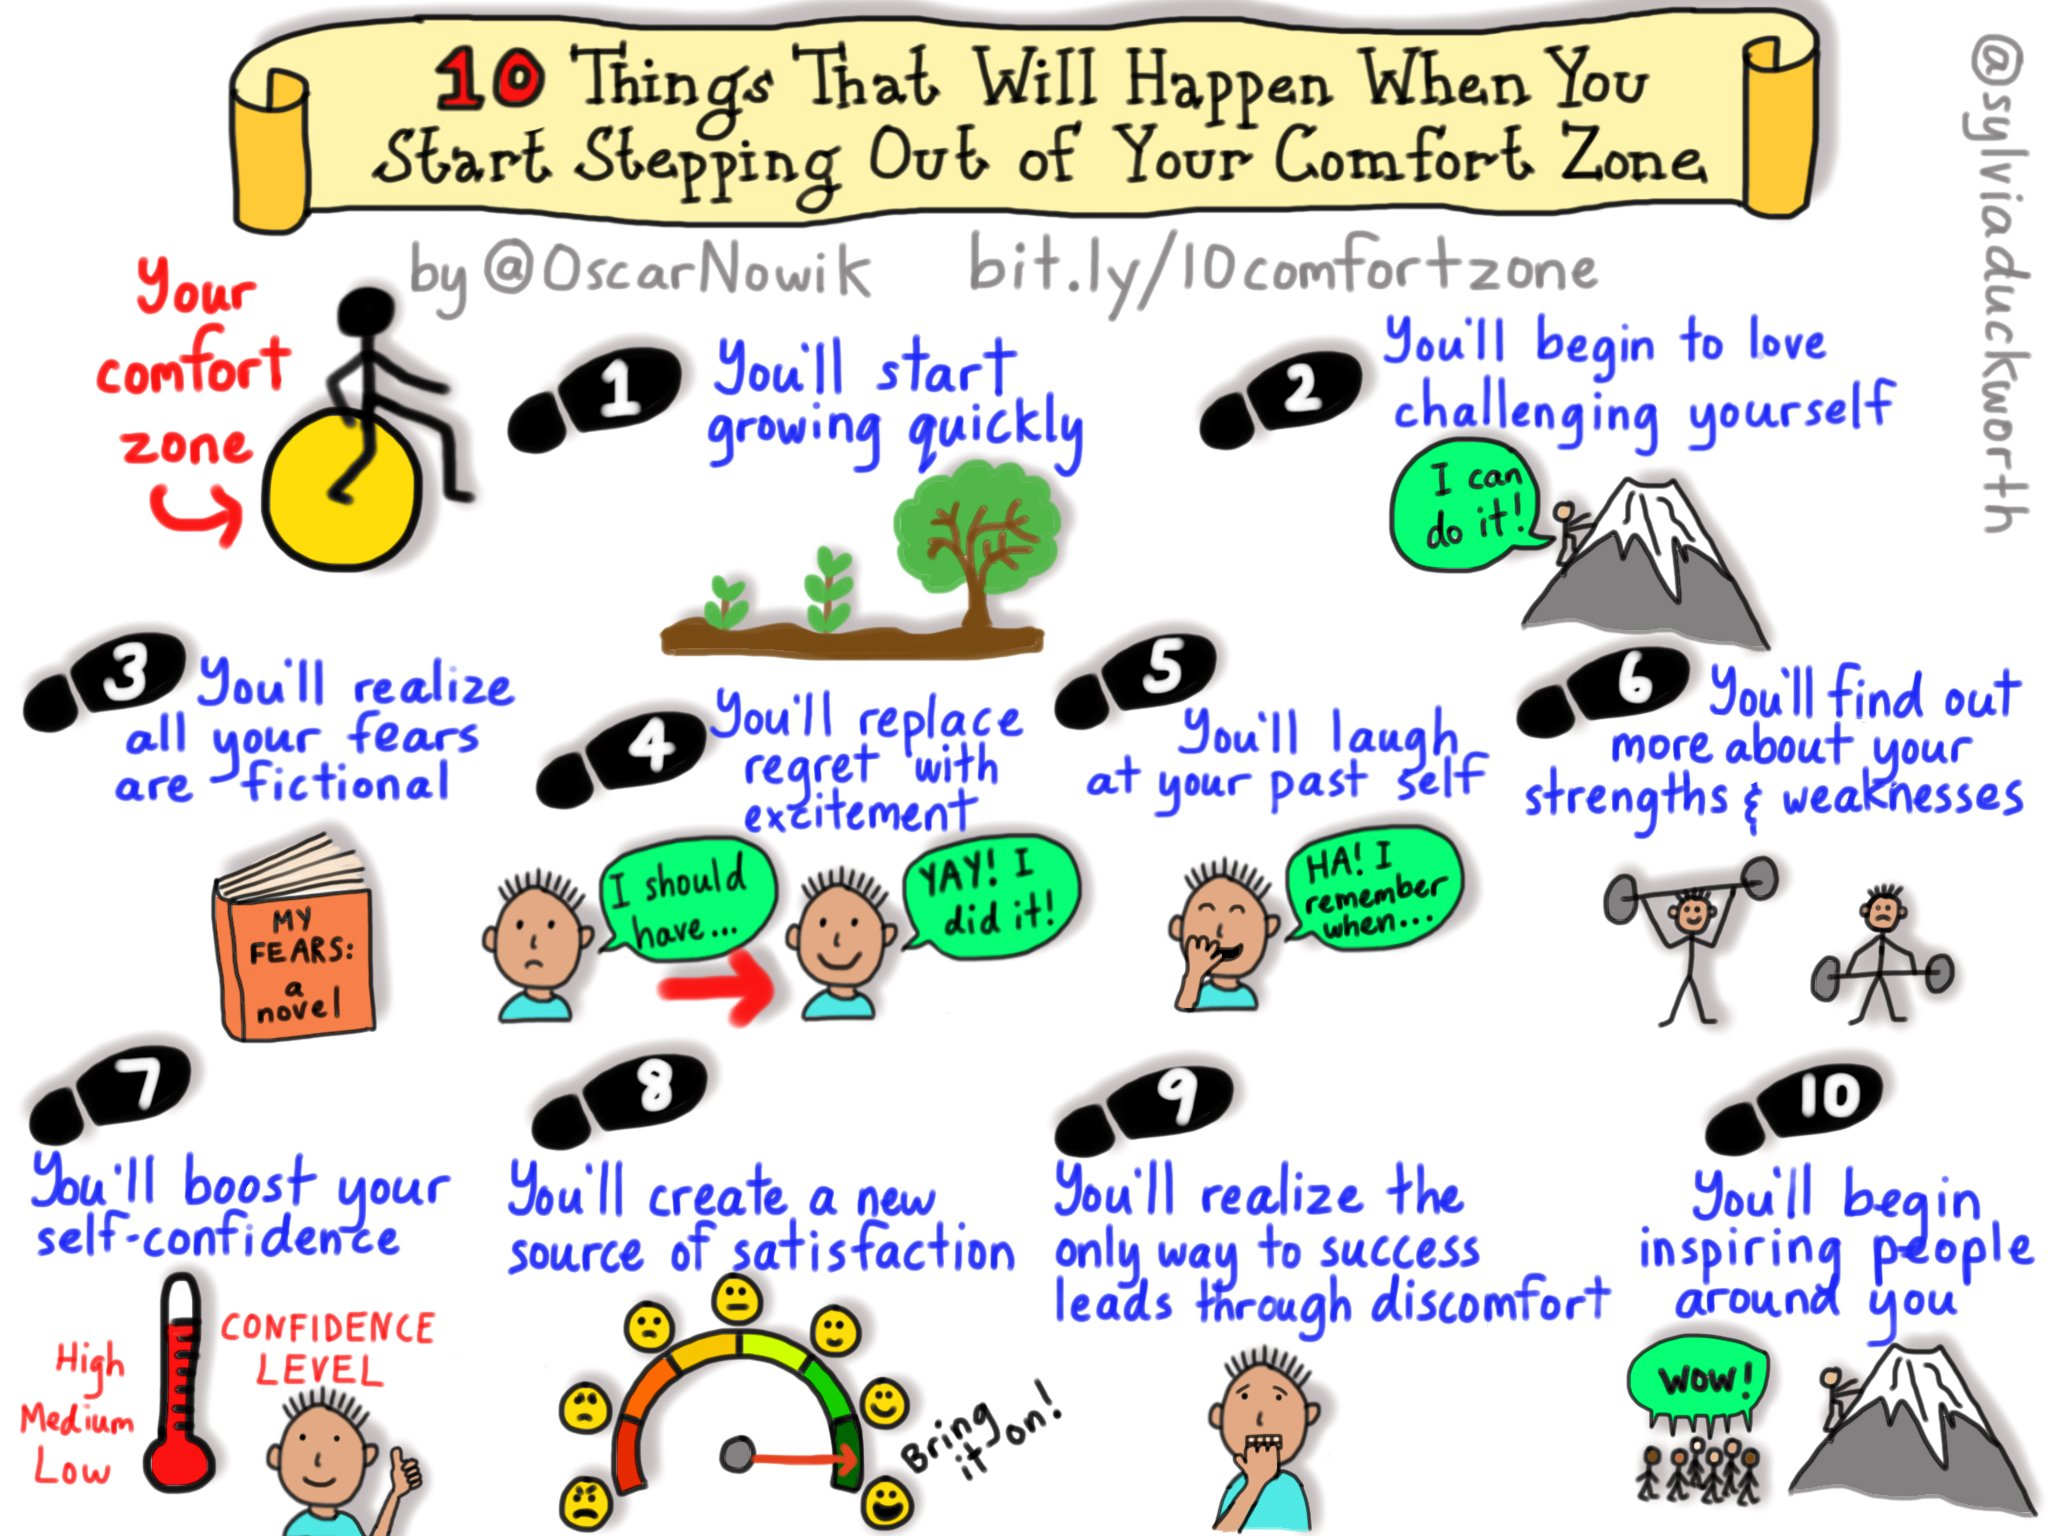 There's both difficulty and the wonder in pushing yourself to try new things @sylviaduckworth @OscarNowick #edchat https://t.co/kC55zRpNpC